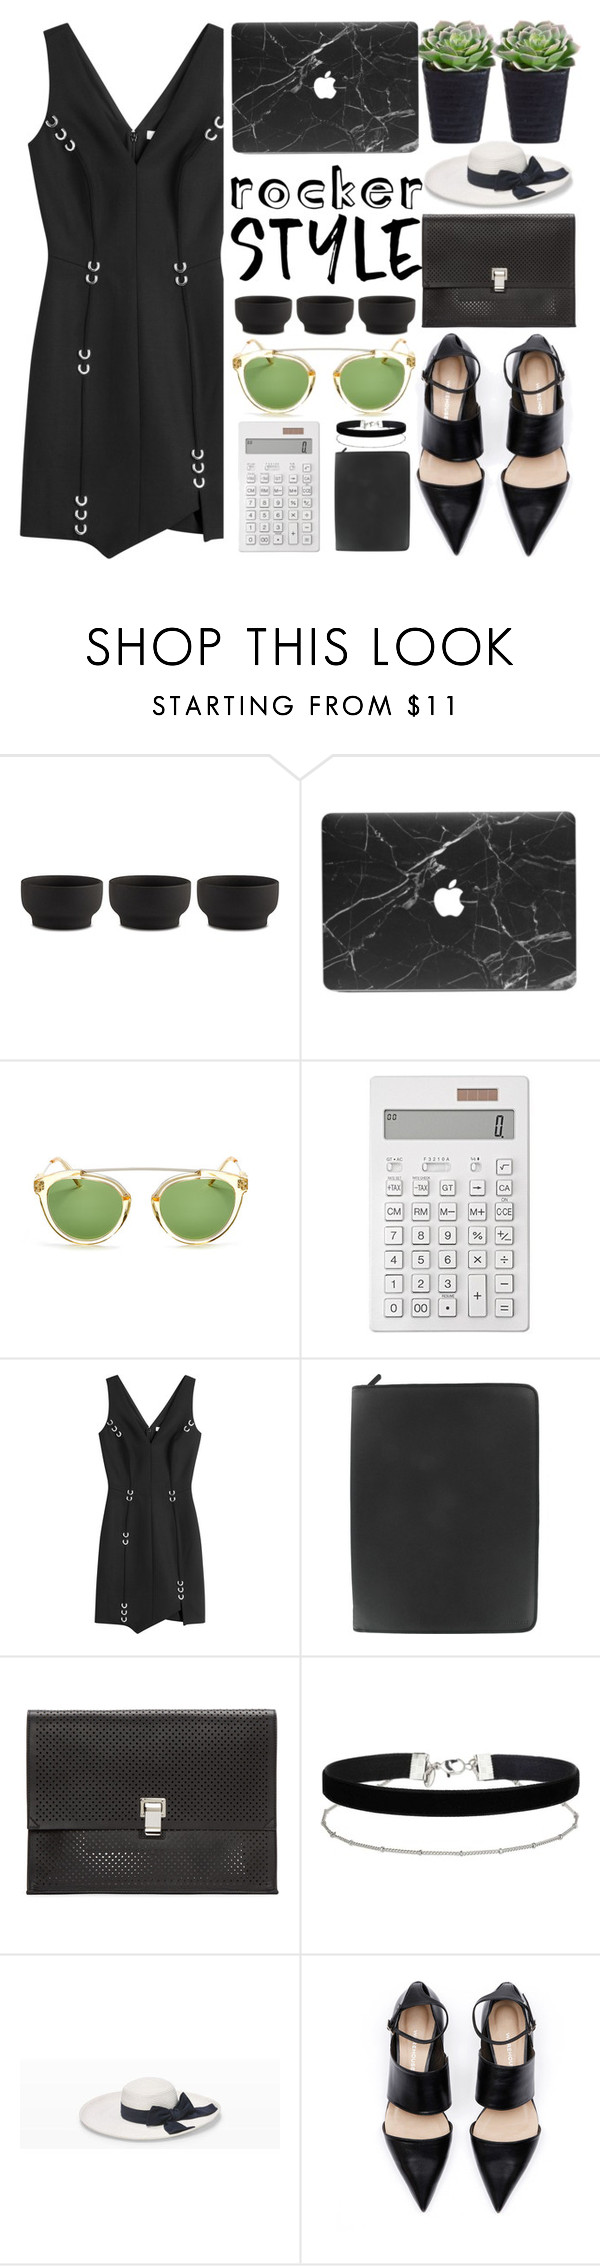 """Black And White Summer"" by jiabao-krohn ❤ liked on Polyvore featuring Stelton, Muji, Thierry Mugler, FiloFax, Proenza Schouler, Miss Selfridge, Club Monaco, rockerchic and rockerstyle"